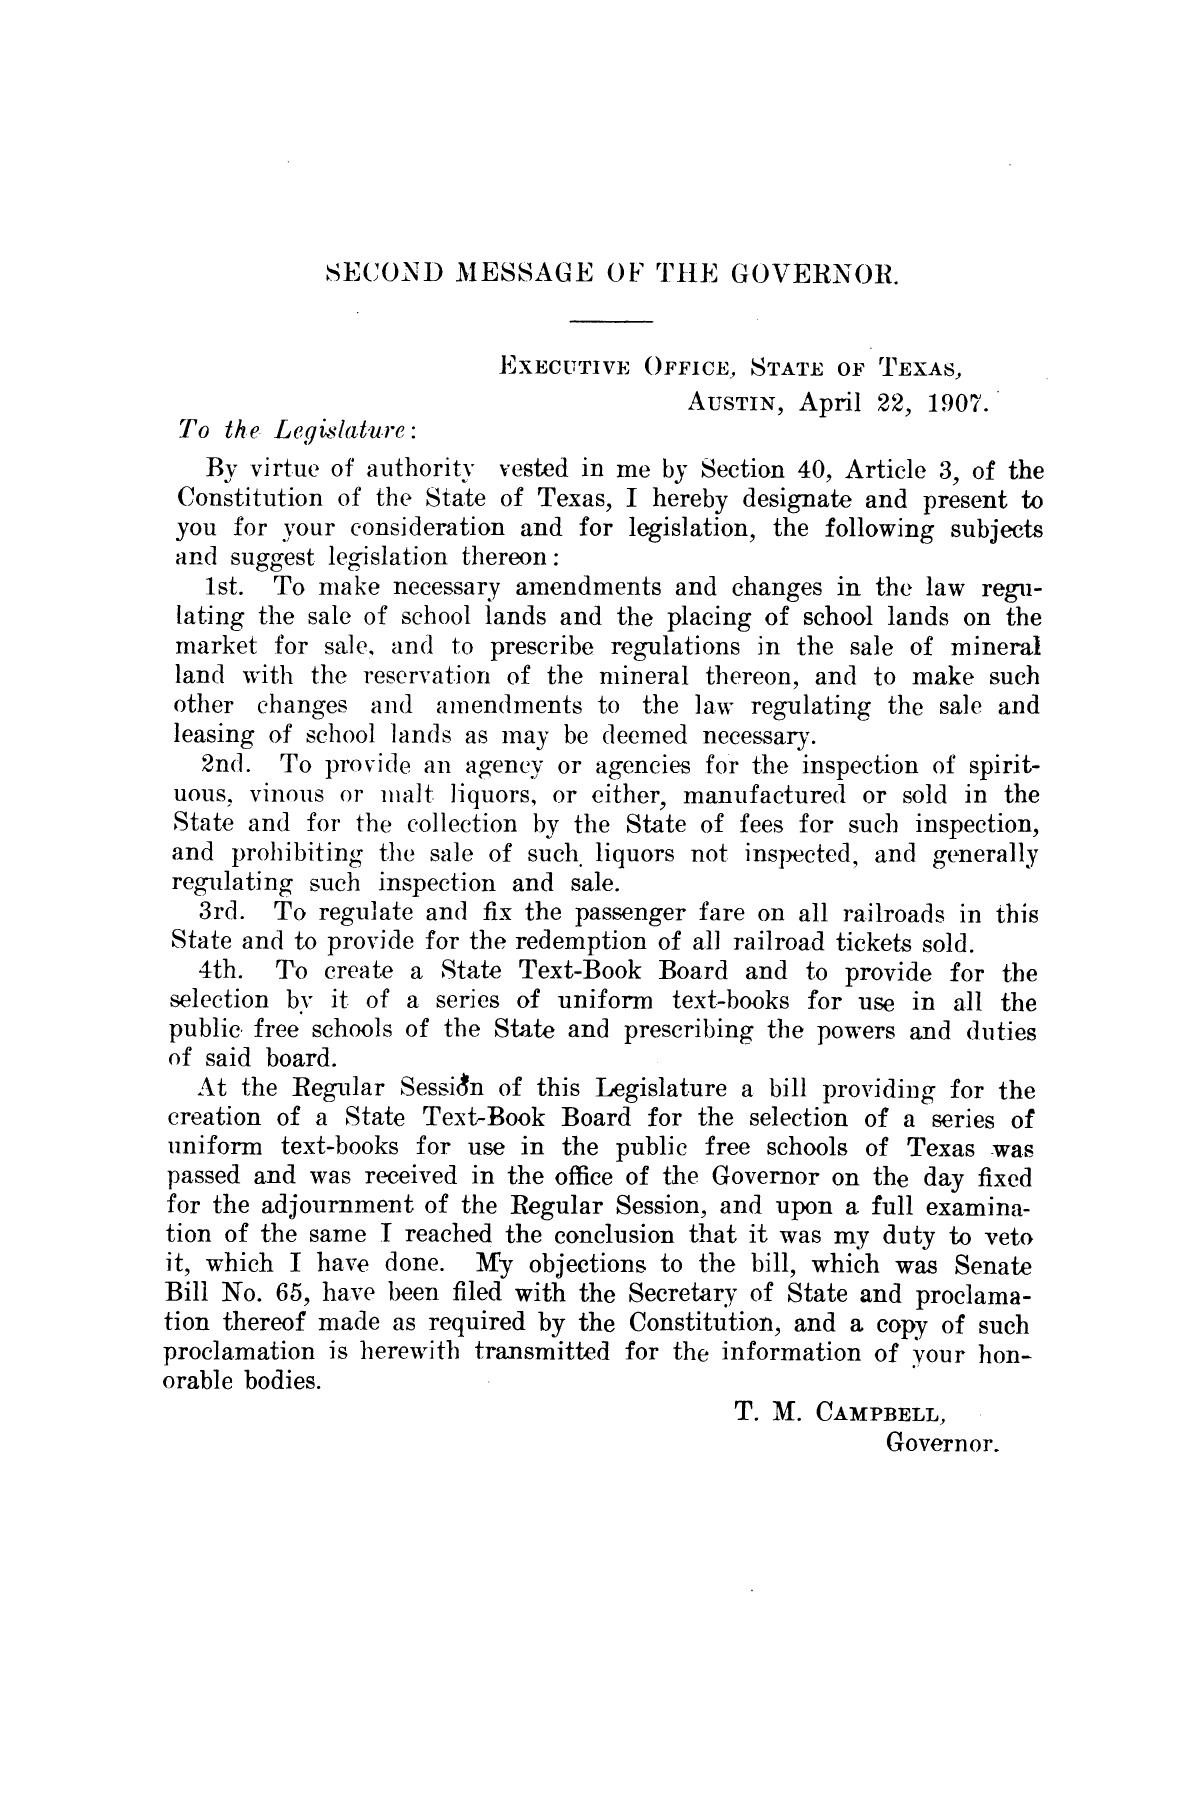 Message of Governor T.M. Campbell to the first called session of the thirtieth legislature of Texas: together with the proclamation of the Governor convening the legislature in extra-ordinary session.                                                                                                      [Sequence #]: 8 of 8